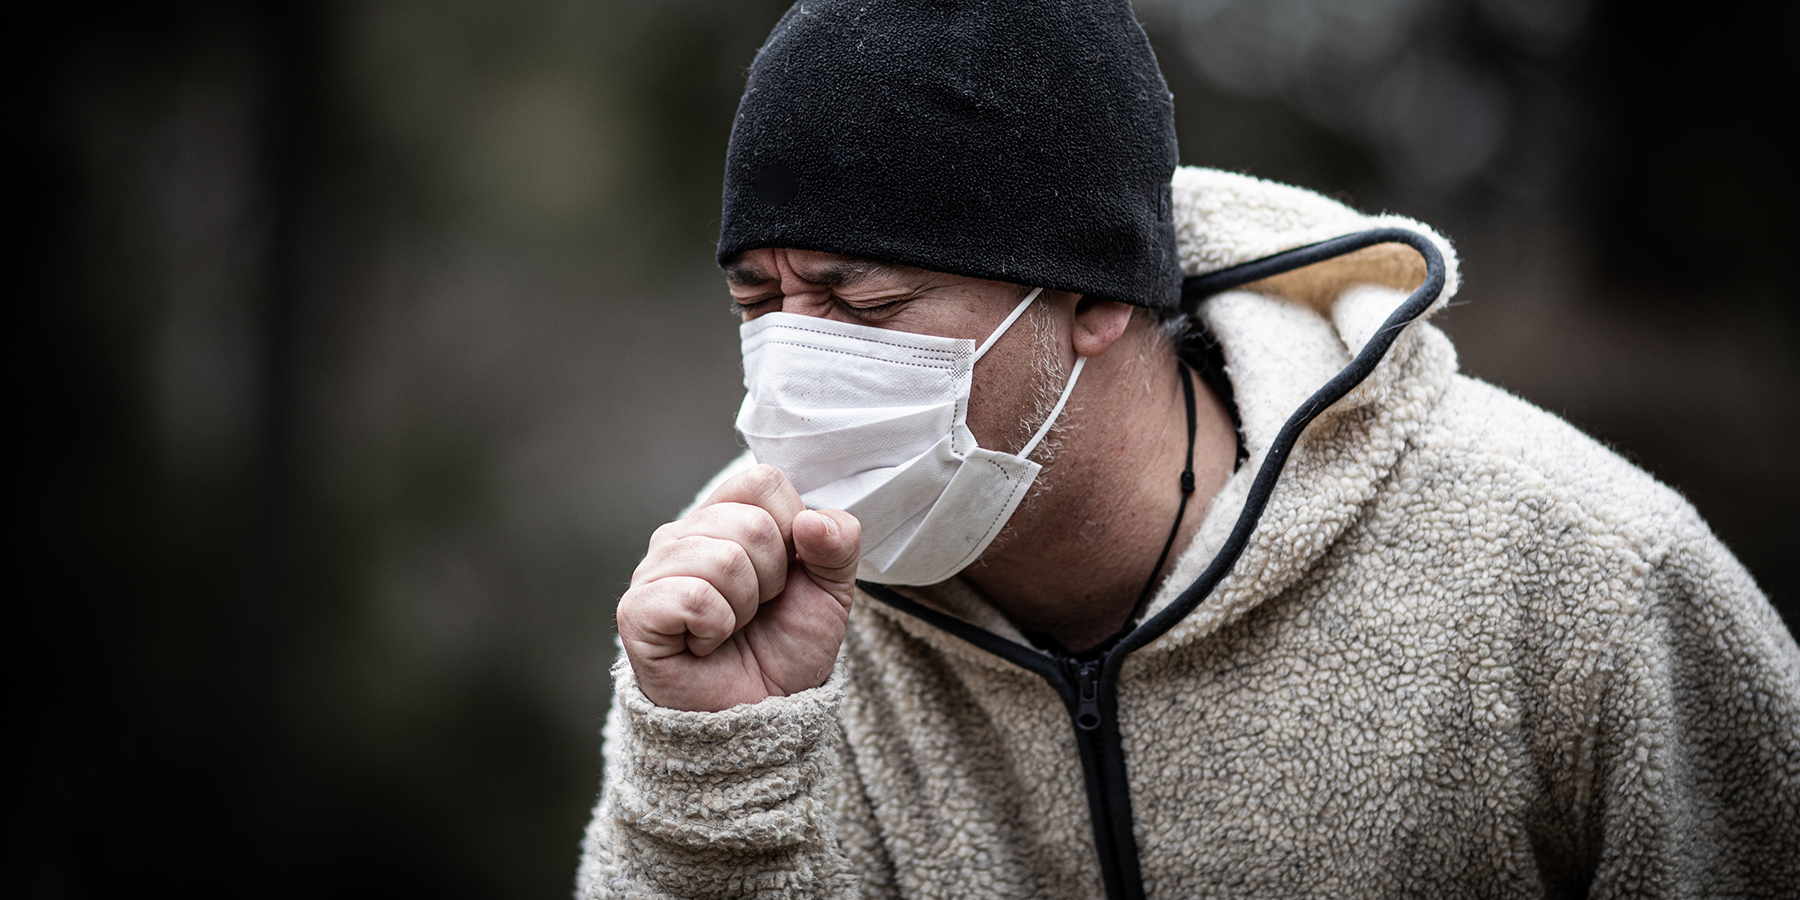 Effectiveness of Different Face Mask Materials When Coughing